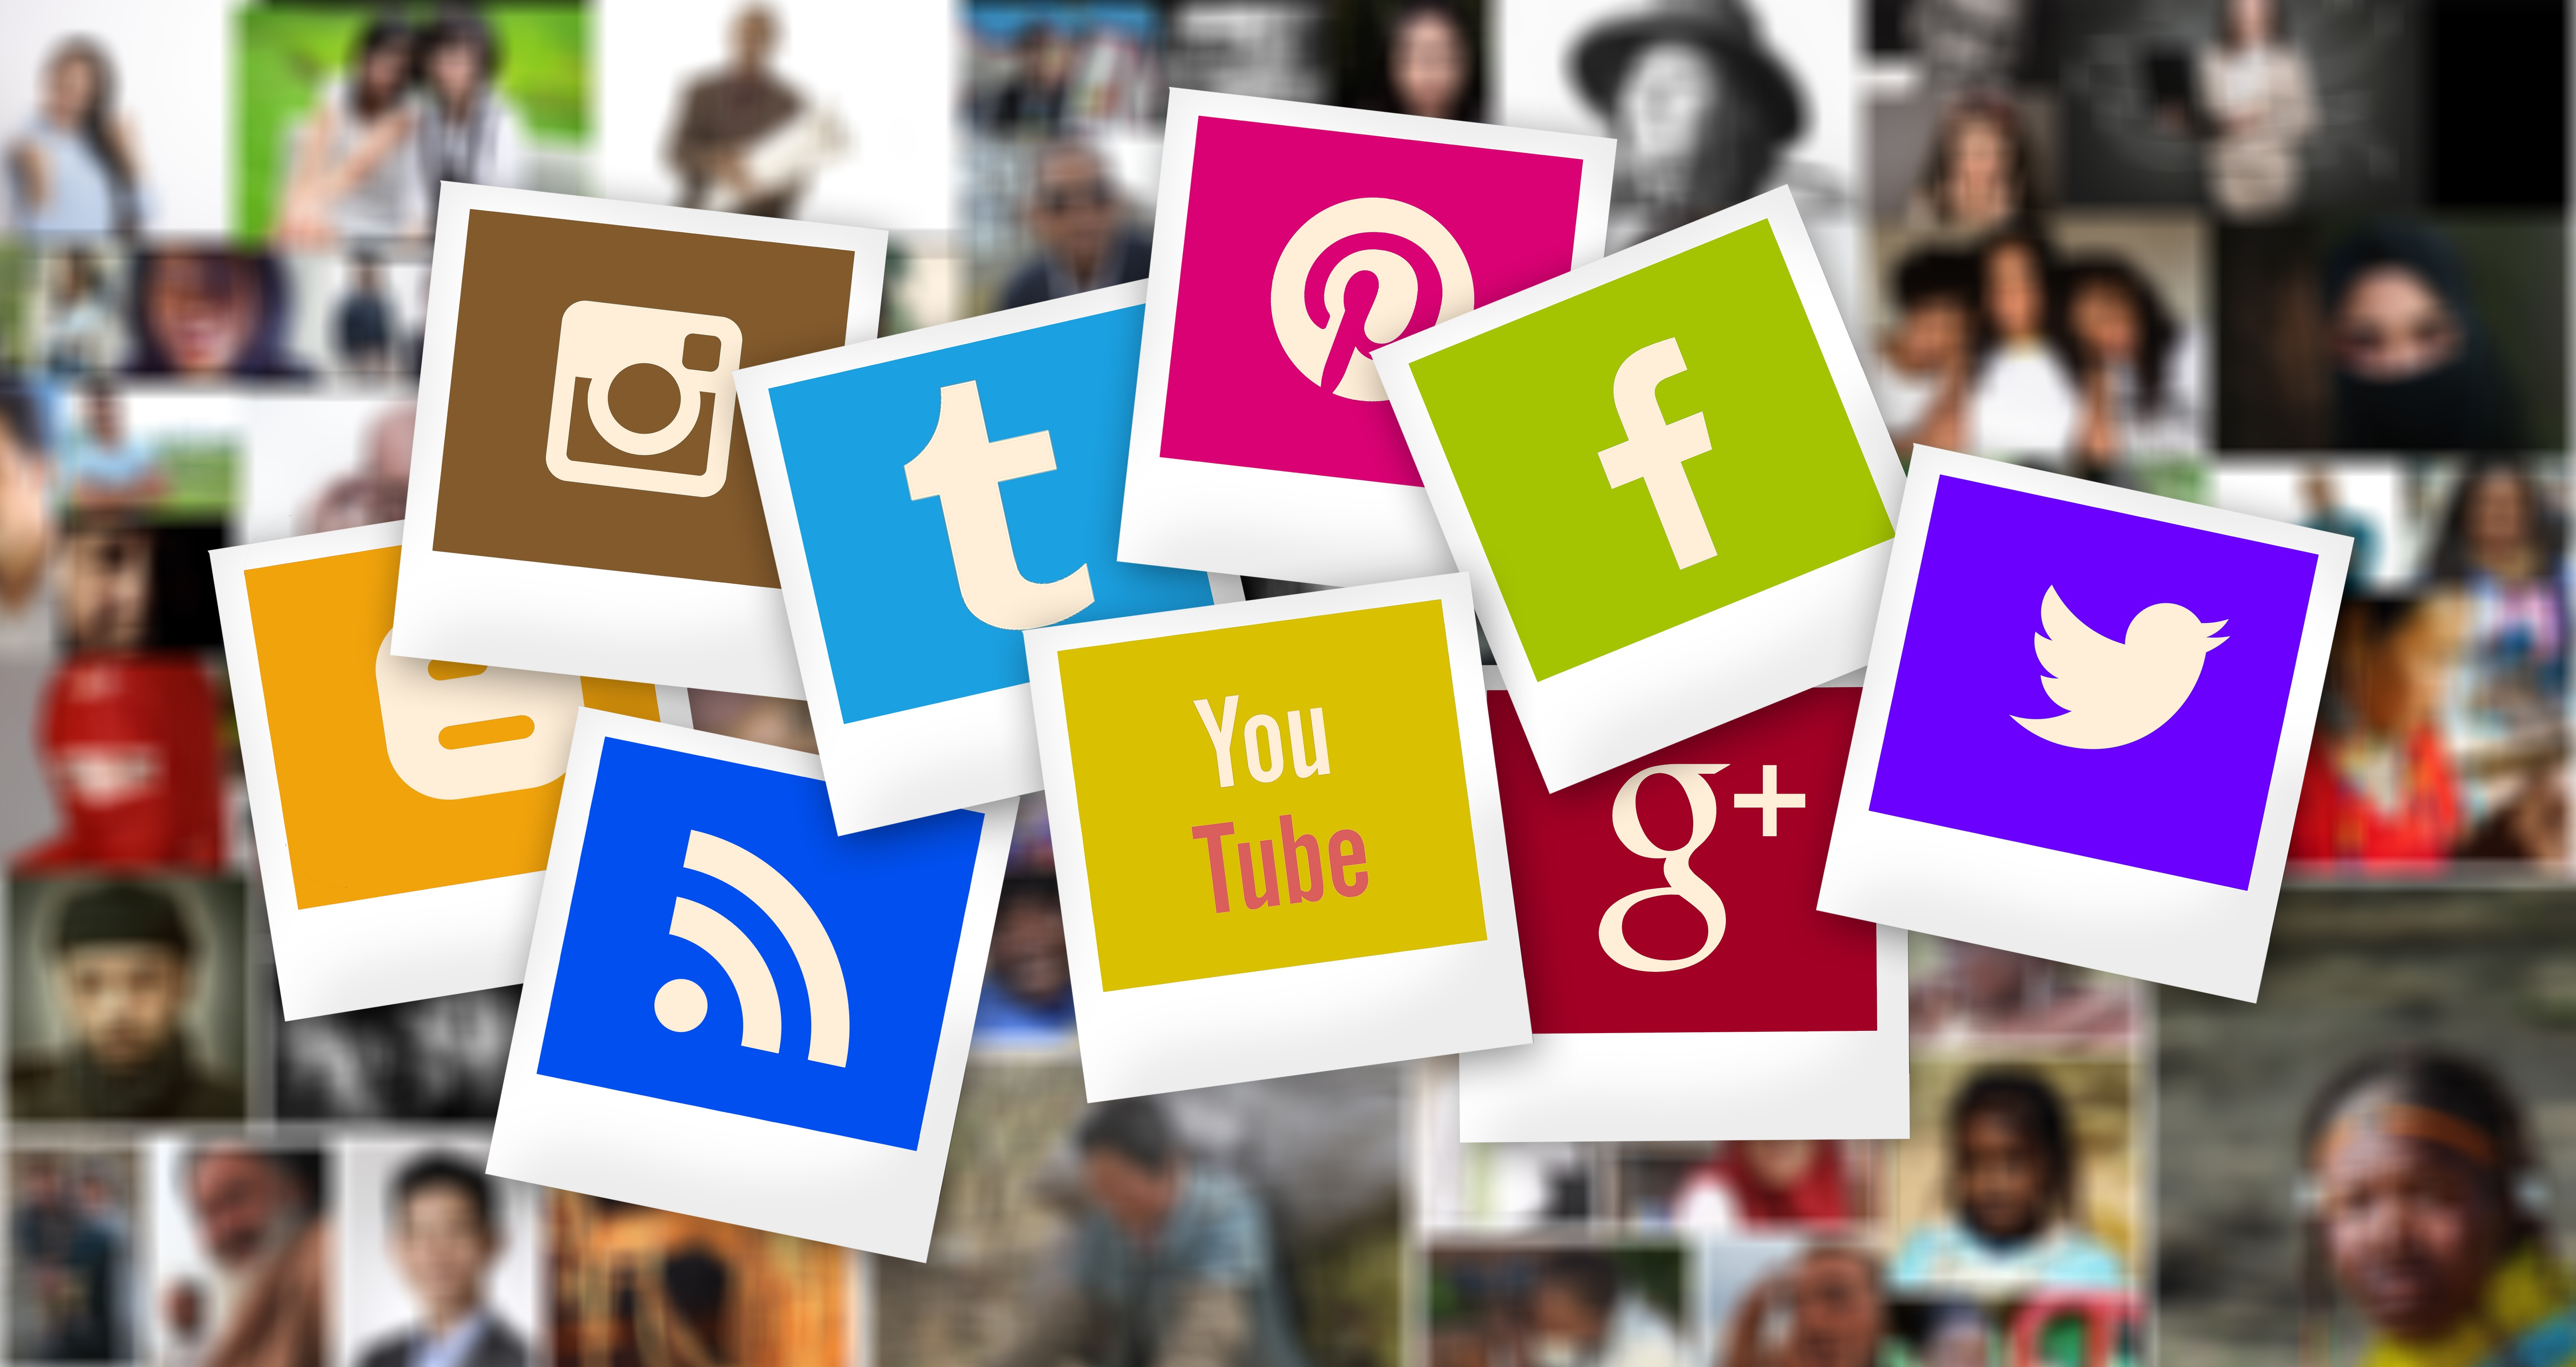 Polaroid-style images of Blogger, Instagram, RSS, Tumblr, Pinterest, YouTube, Facebook, Google+, and Twitter logos over various colors, above a blurry background of images of people.